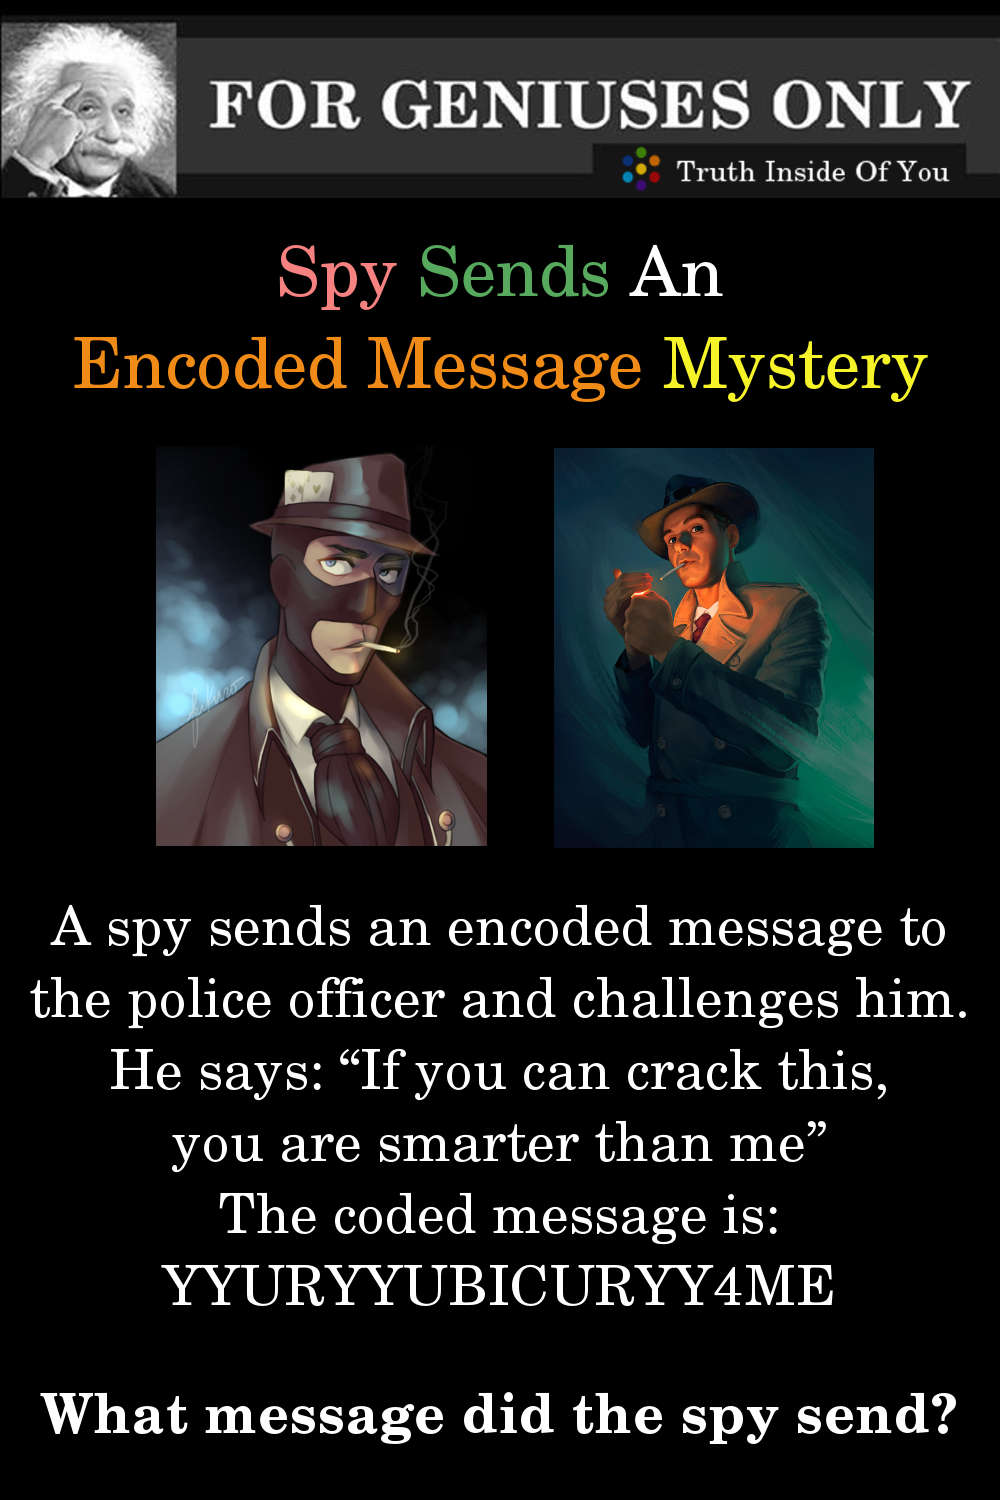 Riddle: Spy Sends An Encoded Message Mystery